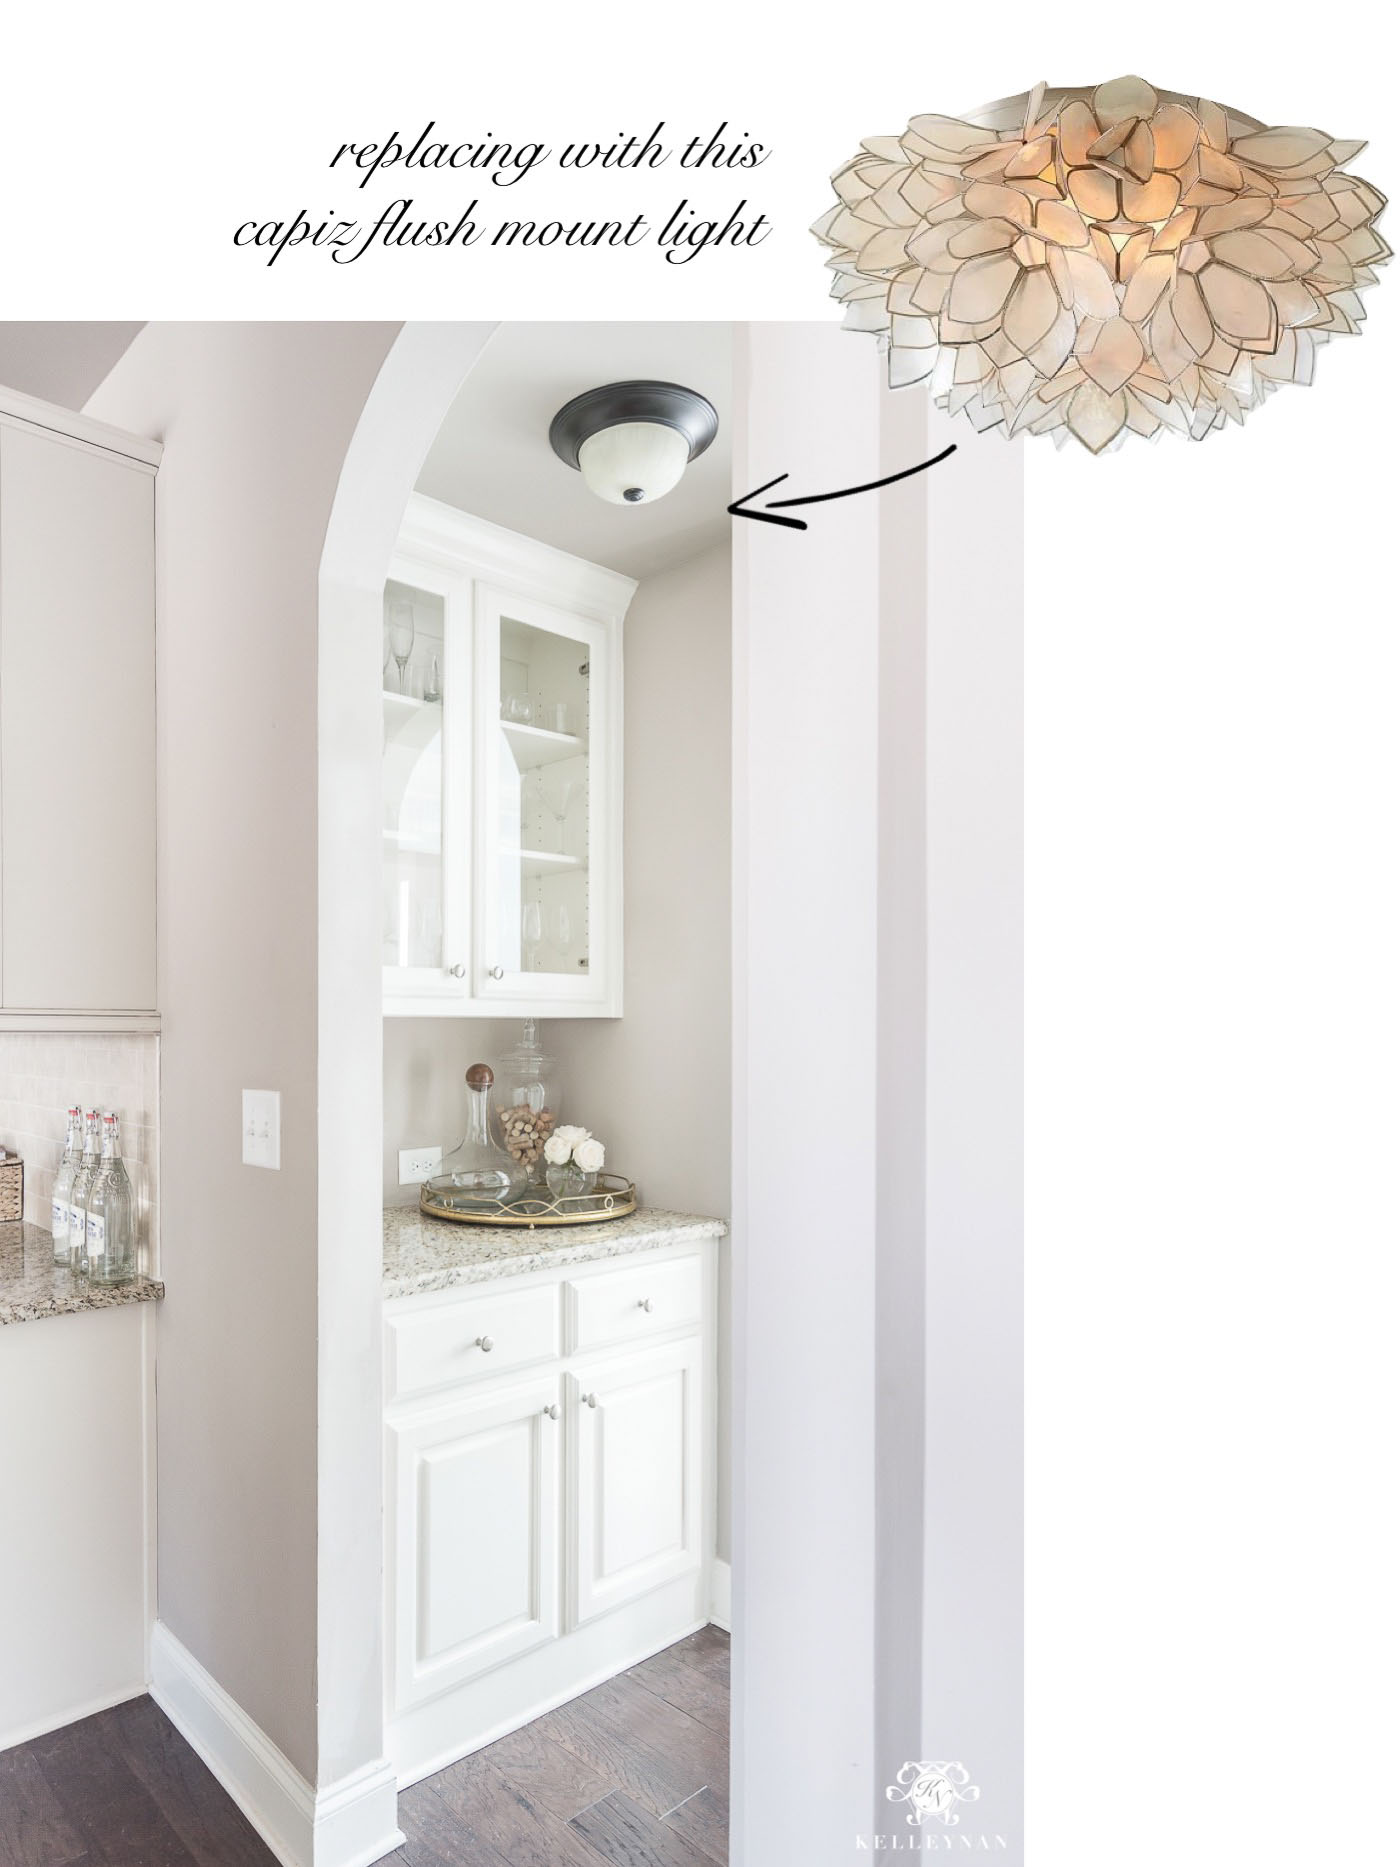 Capiz Flush mount Lighting Ideas